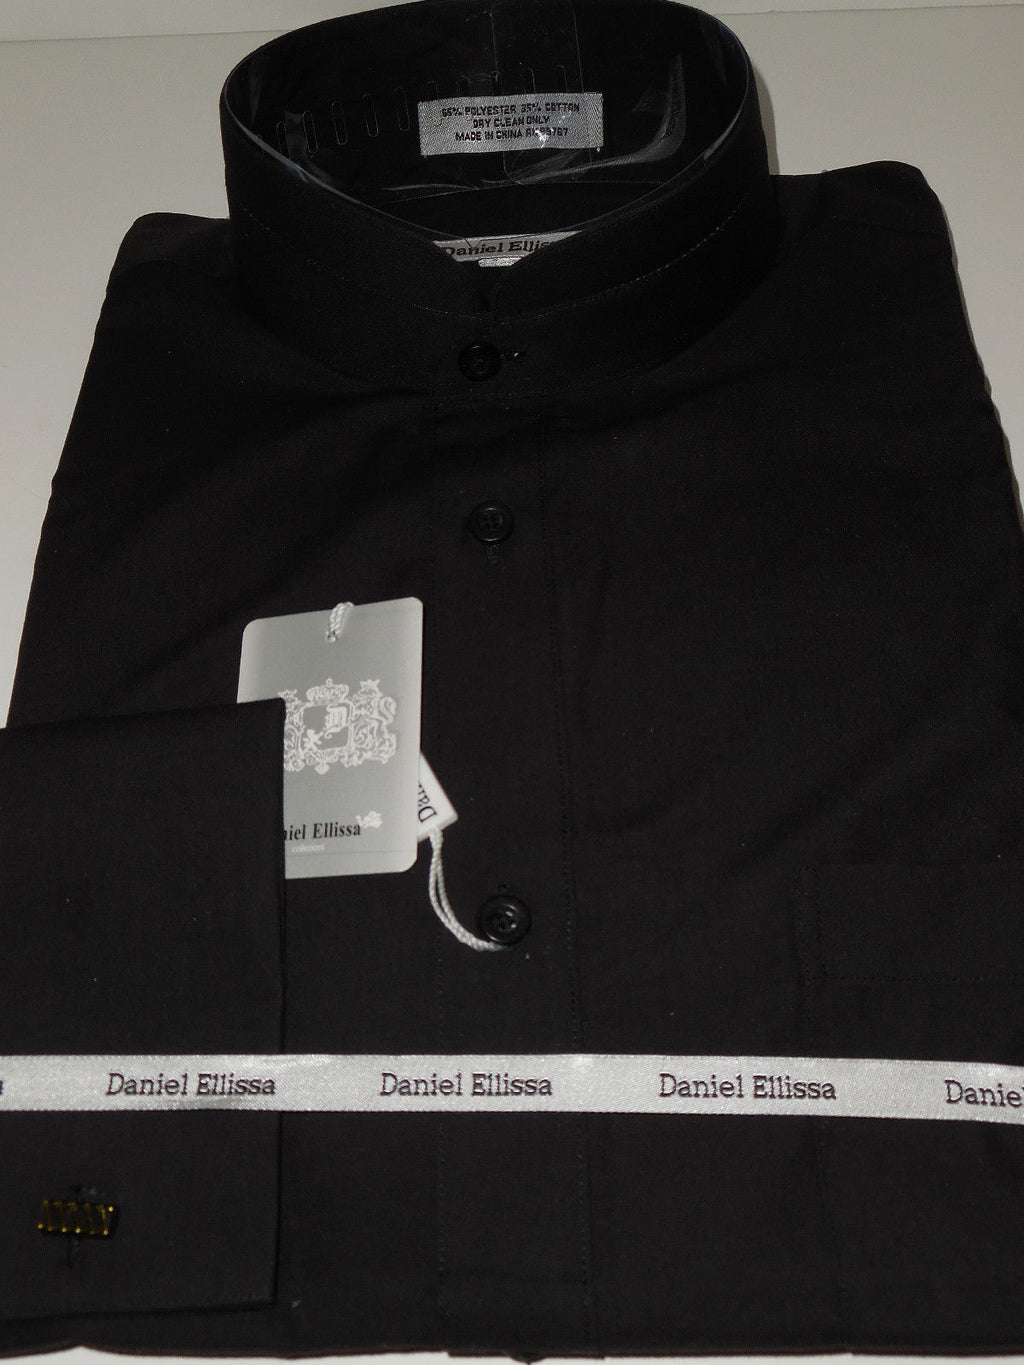 Mens Black High Collar Nehru Collarless Style French Cuff Dress Shirt DS3002C - Nader Fashion Las Vegas